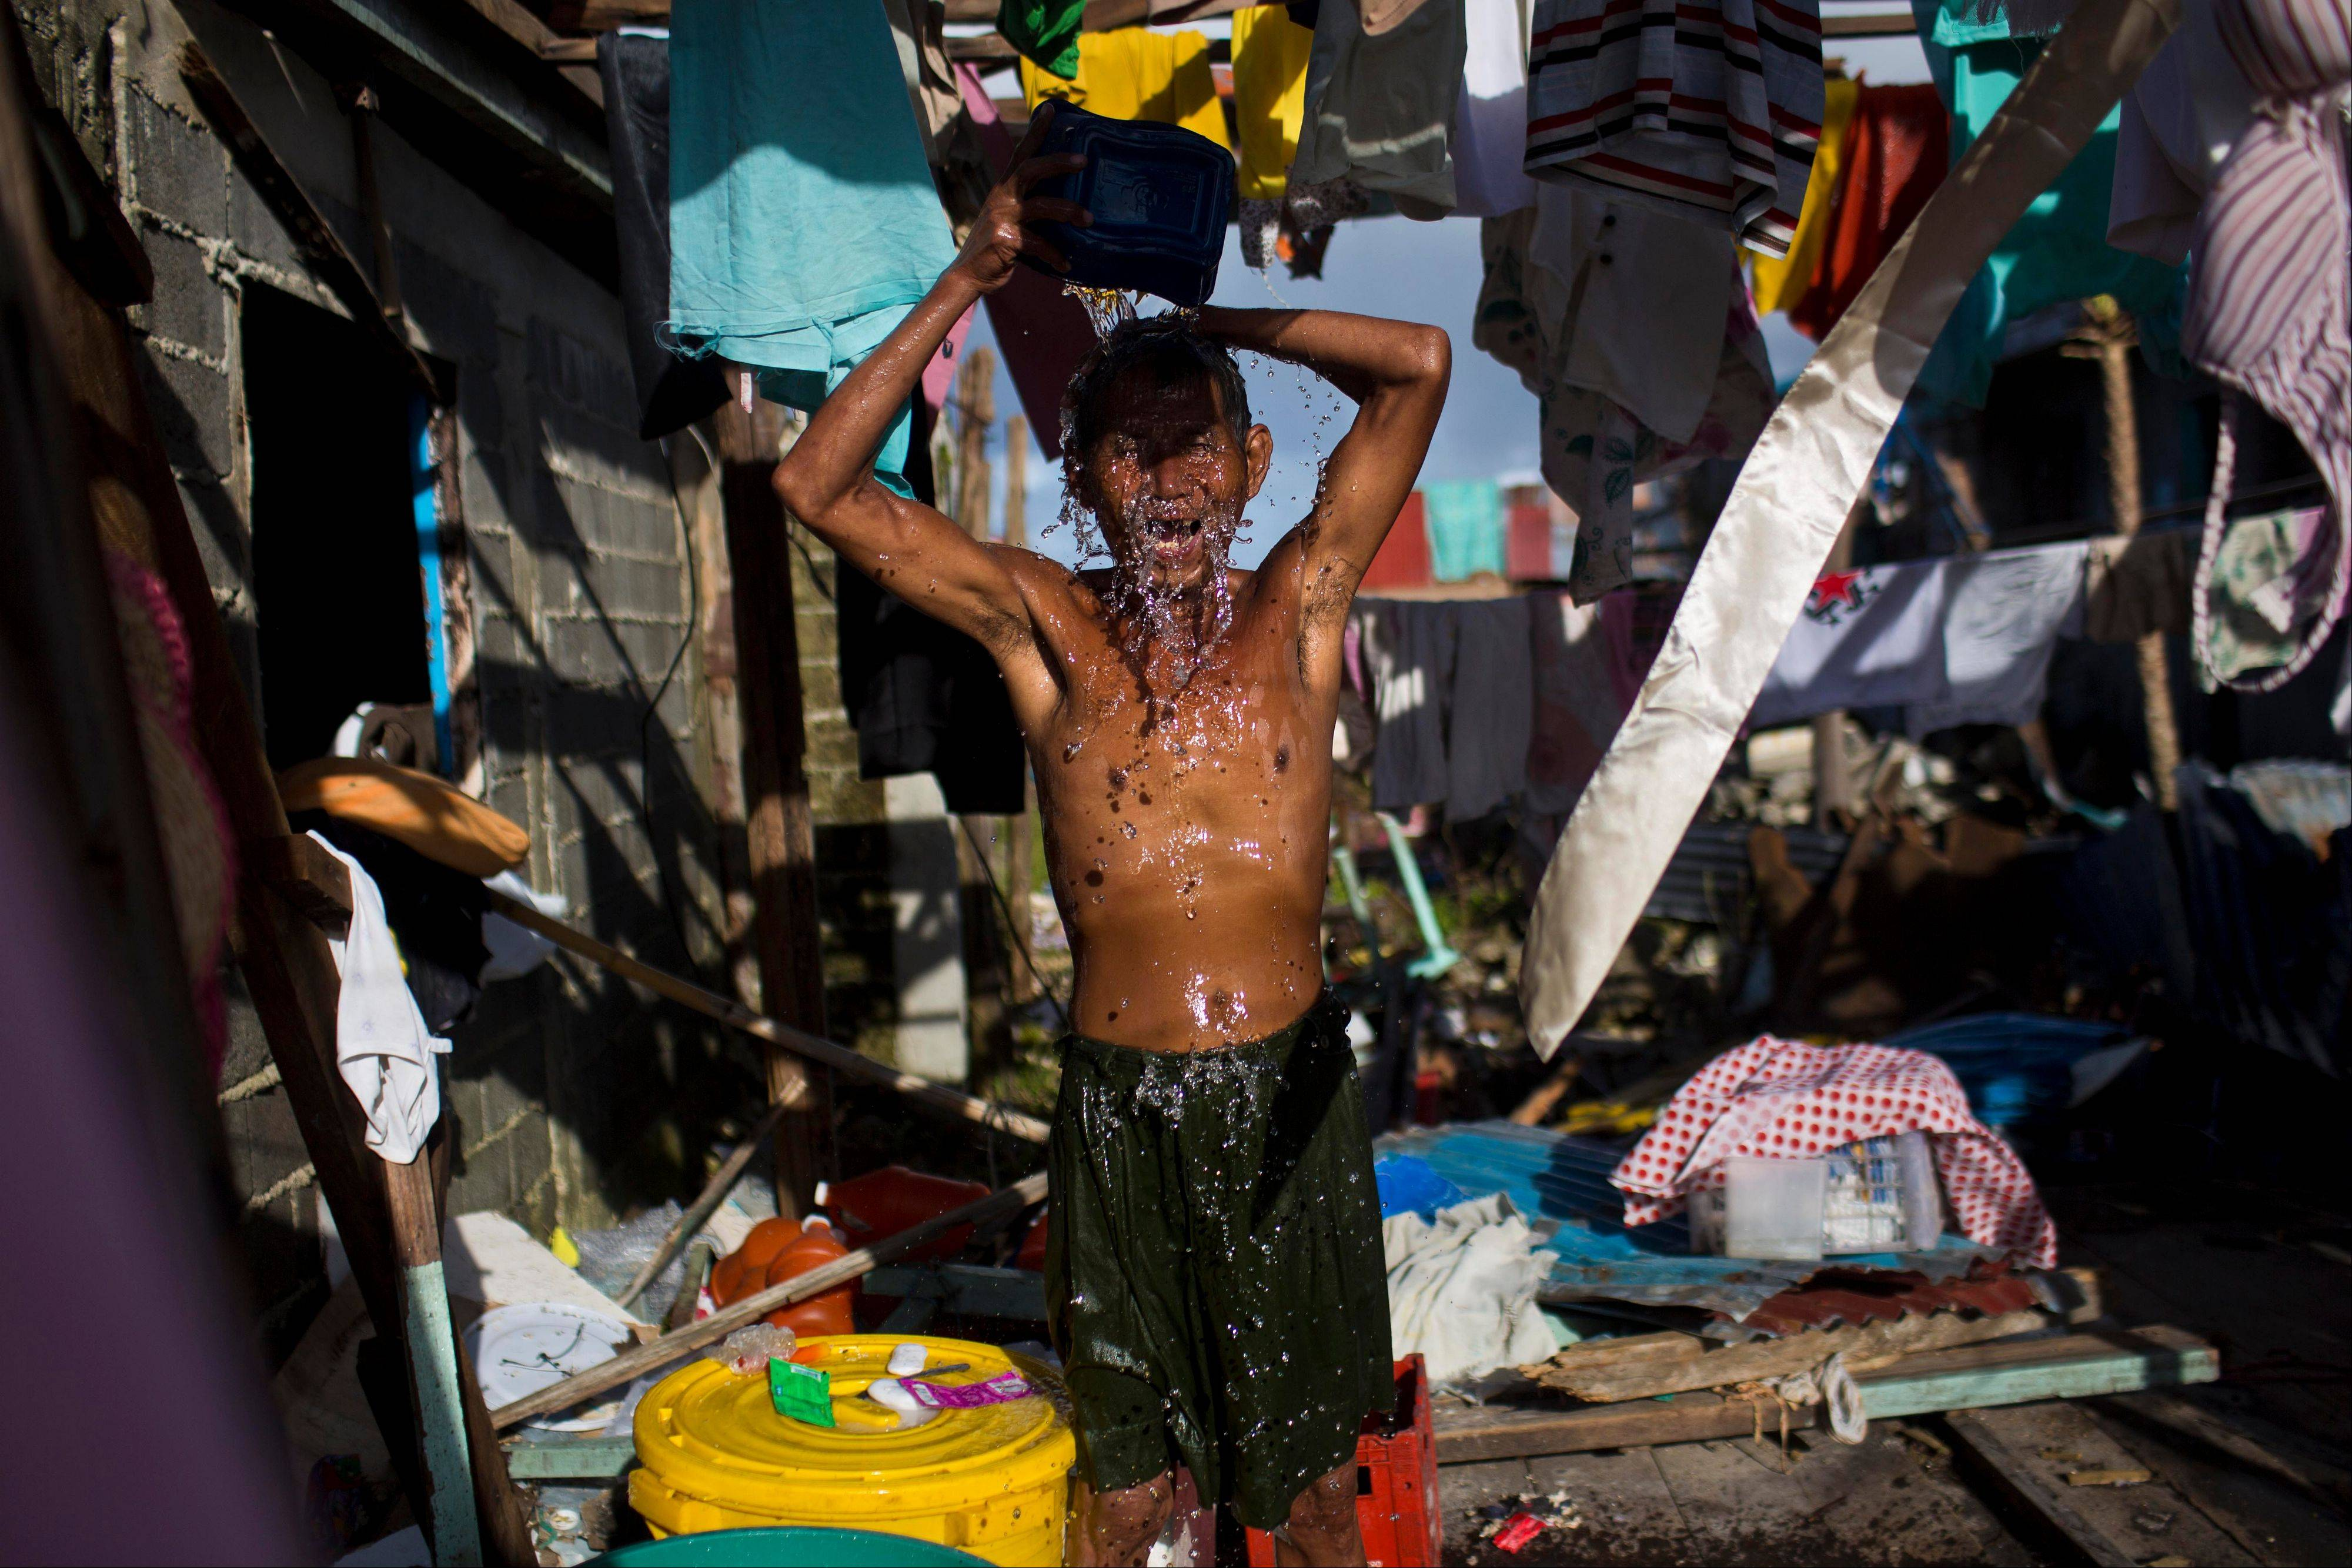 A Typhoon Haiyan survivor bathes in the ruins of his home in Guiuan, Philippines on Friday, Nov. 15, 2013. Typhoon Haiyan, one of the most powerful storms on record, hit the country's eastern seaboard Nov. 8, leaving a wide swath of destruction.